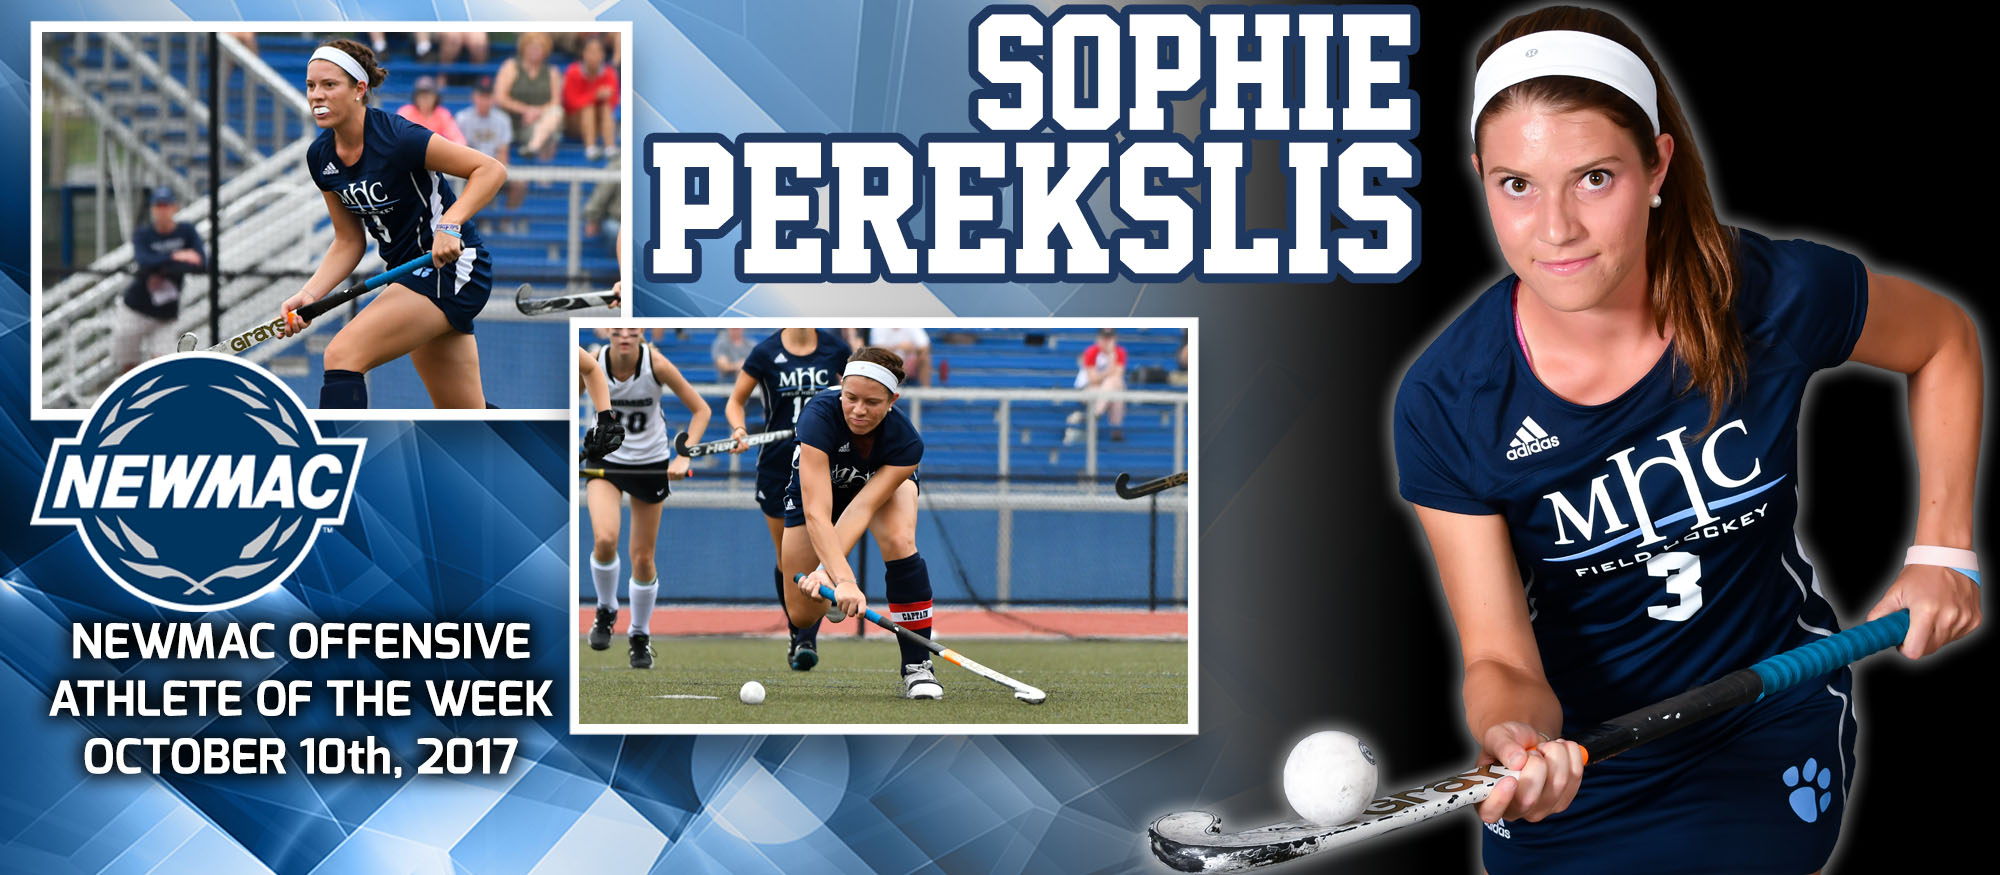 Collage image of field hockey player Sophie Perekslis who was named the NEWMAC Offensive Athlete of the Week for October 10, 2017.